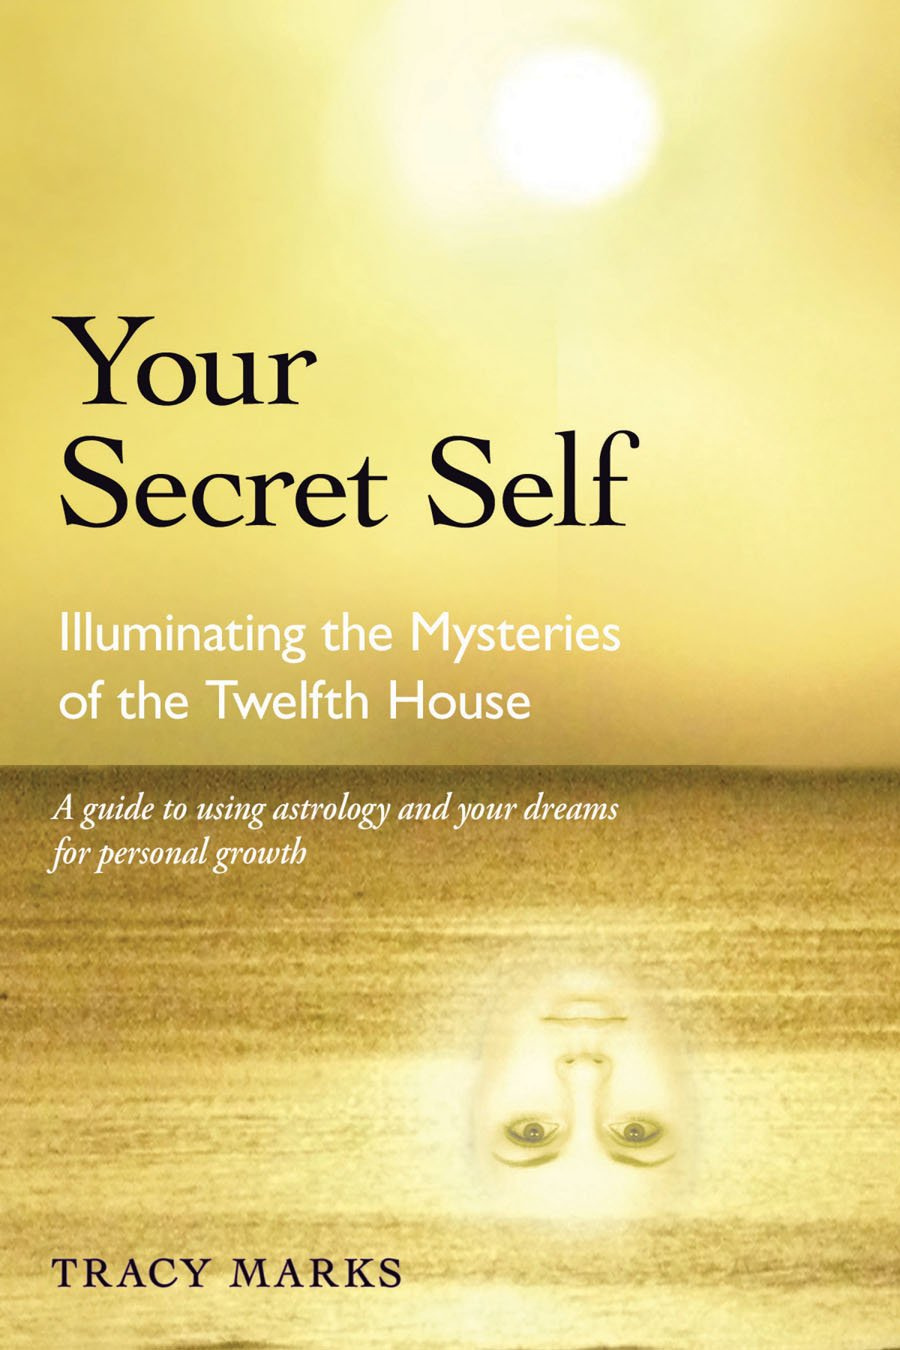 Download Your Secret Self: Illuminating the Mysteries of the Twelfth House PDF